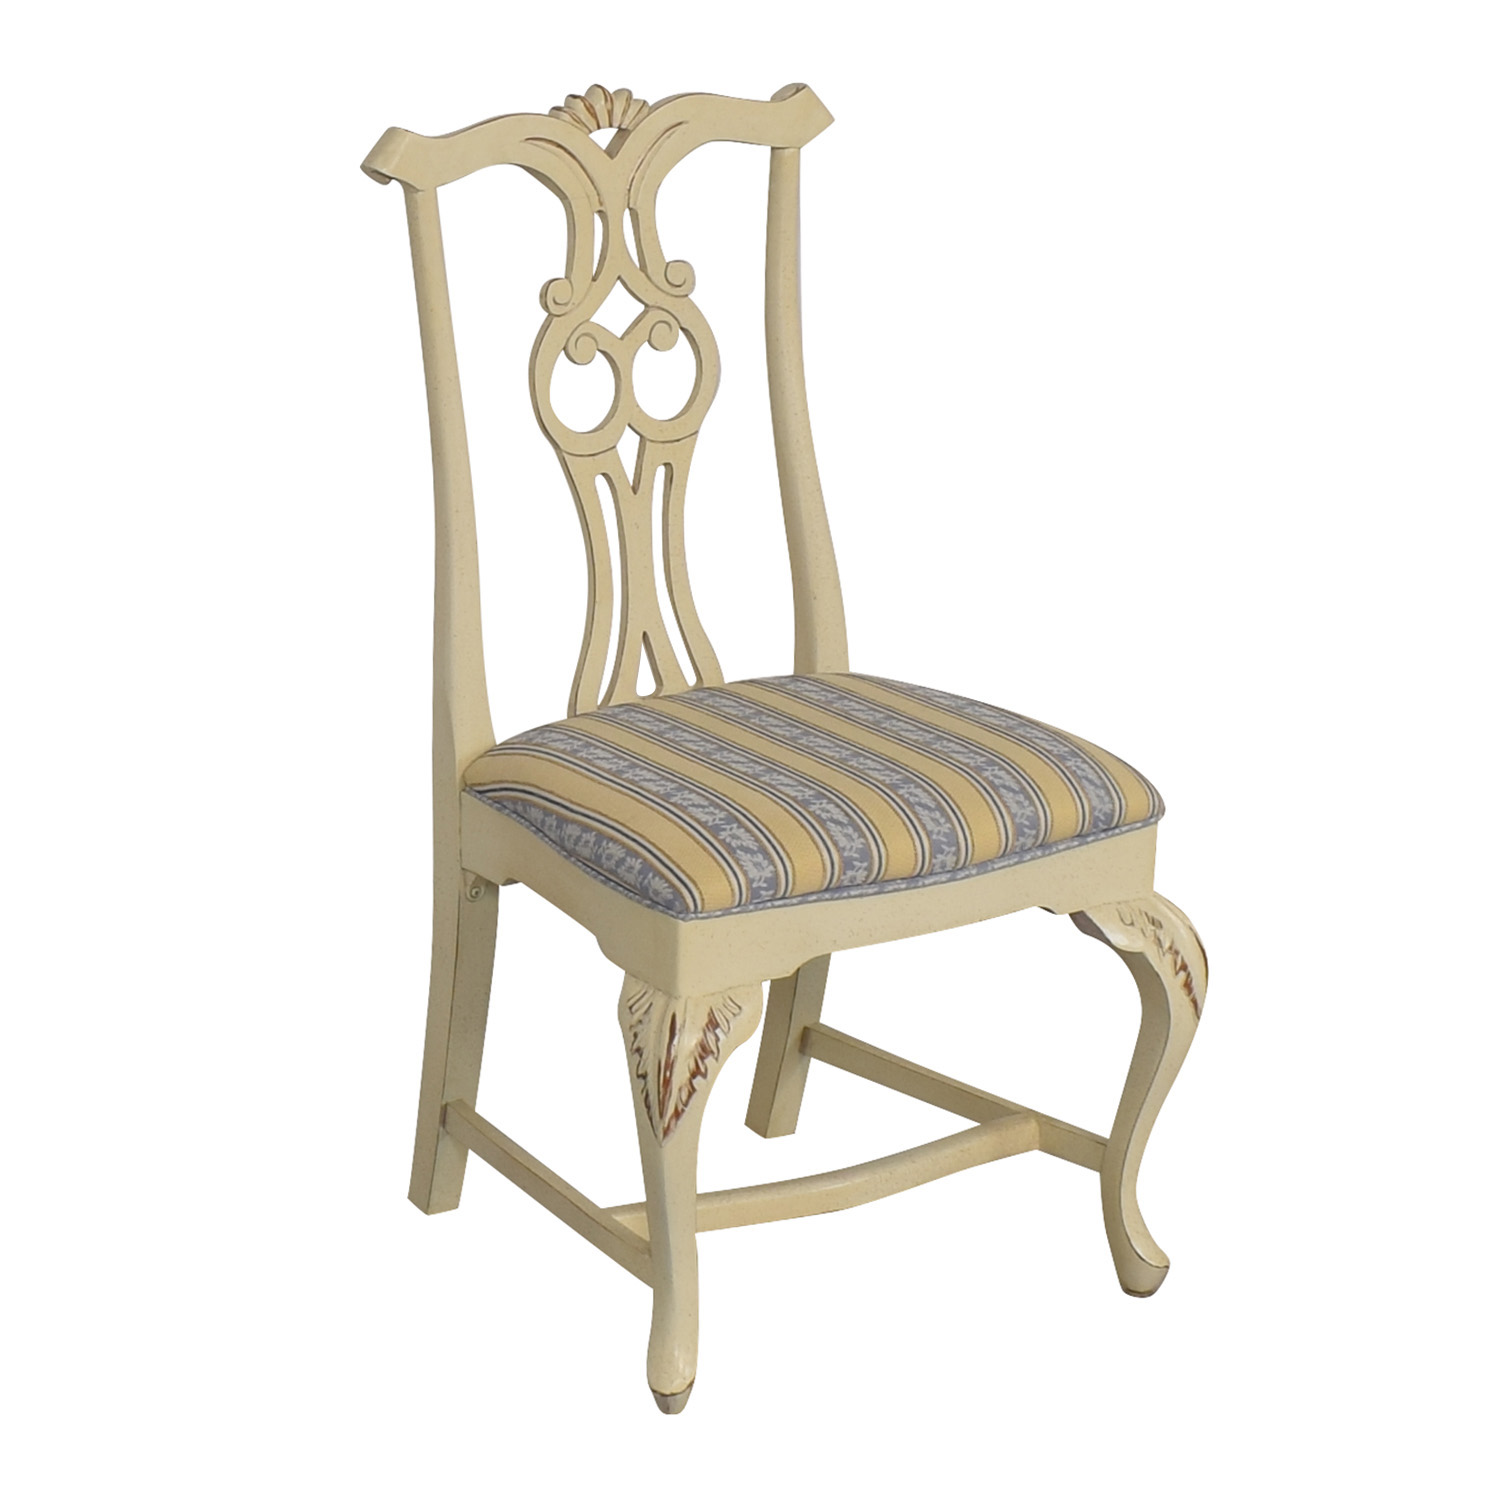 Andre Originals Upholstered Dining Chair / Dining Chairs